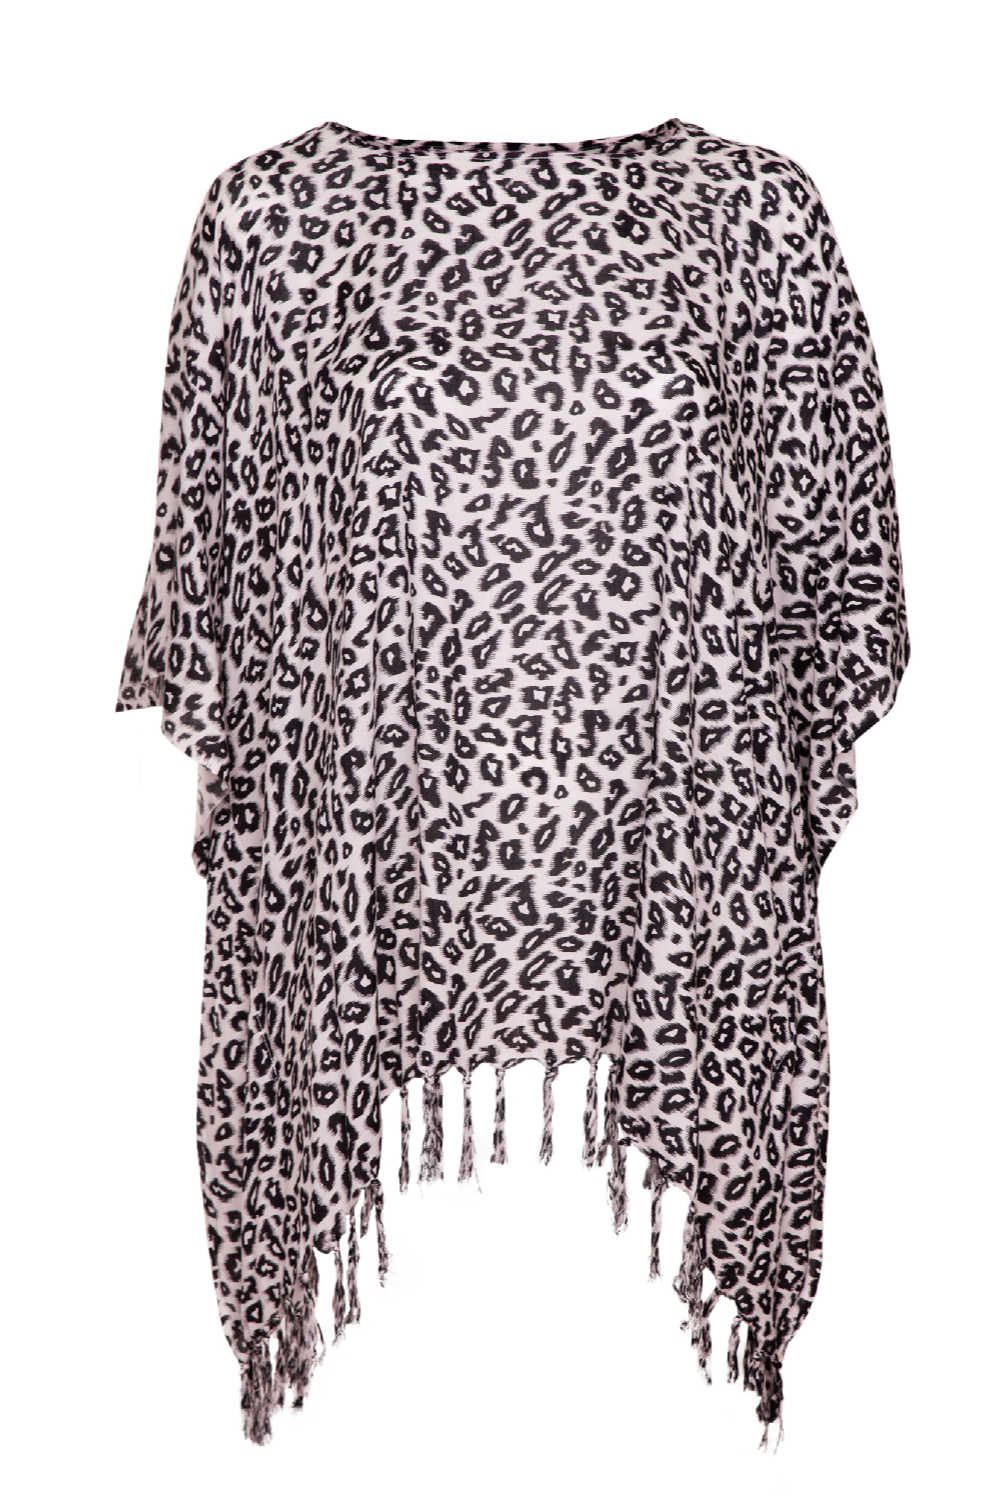 leopard-print-kaftan-top-black-white